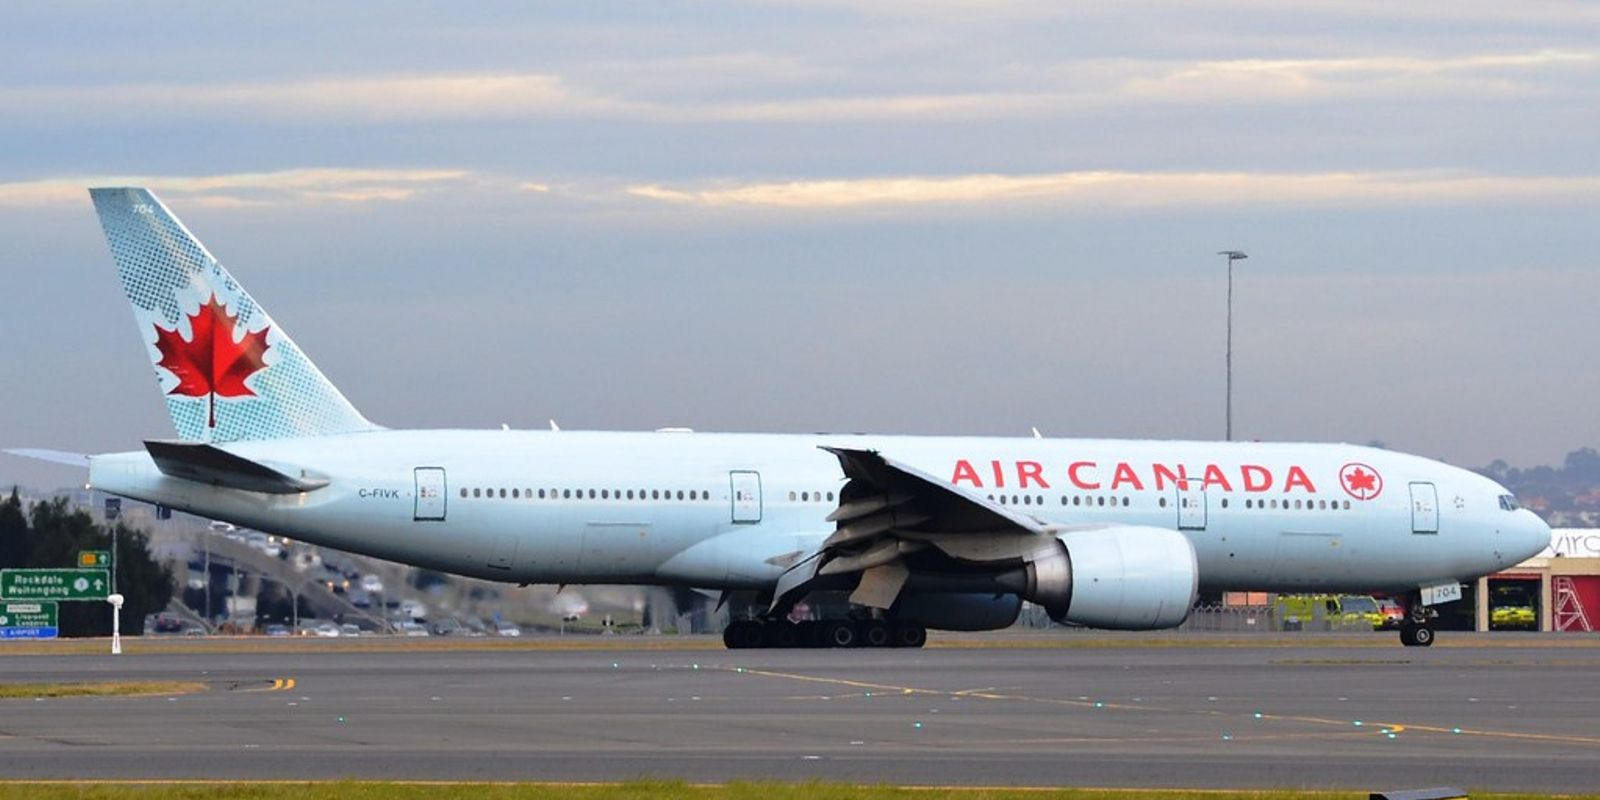 Staff at Air Canada will no longer use 'ladies and gentlemen' to address passengers